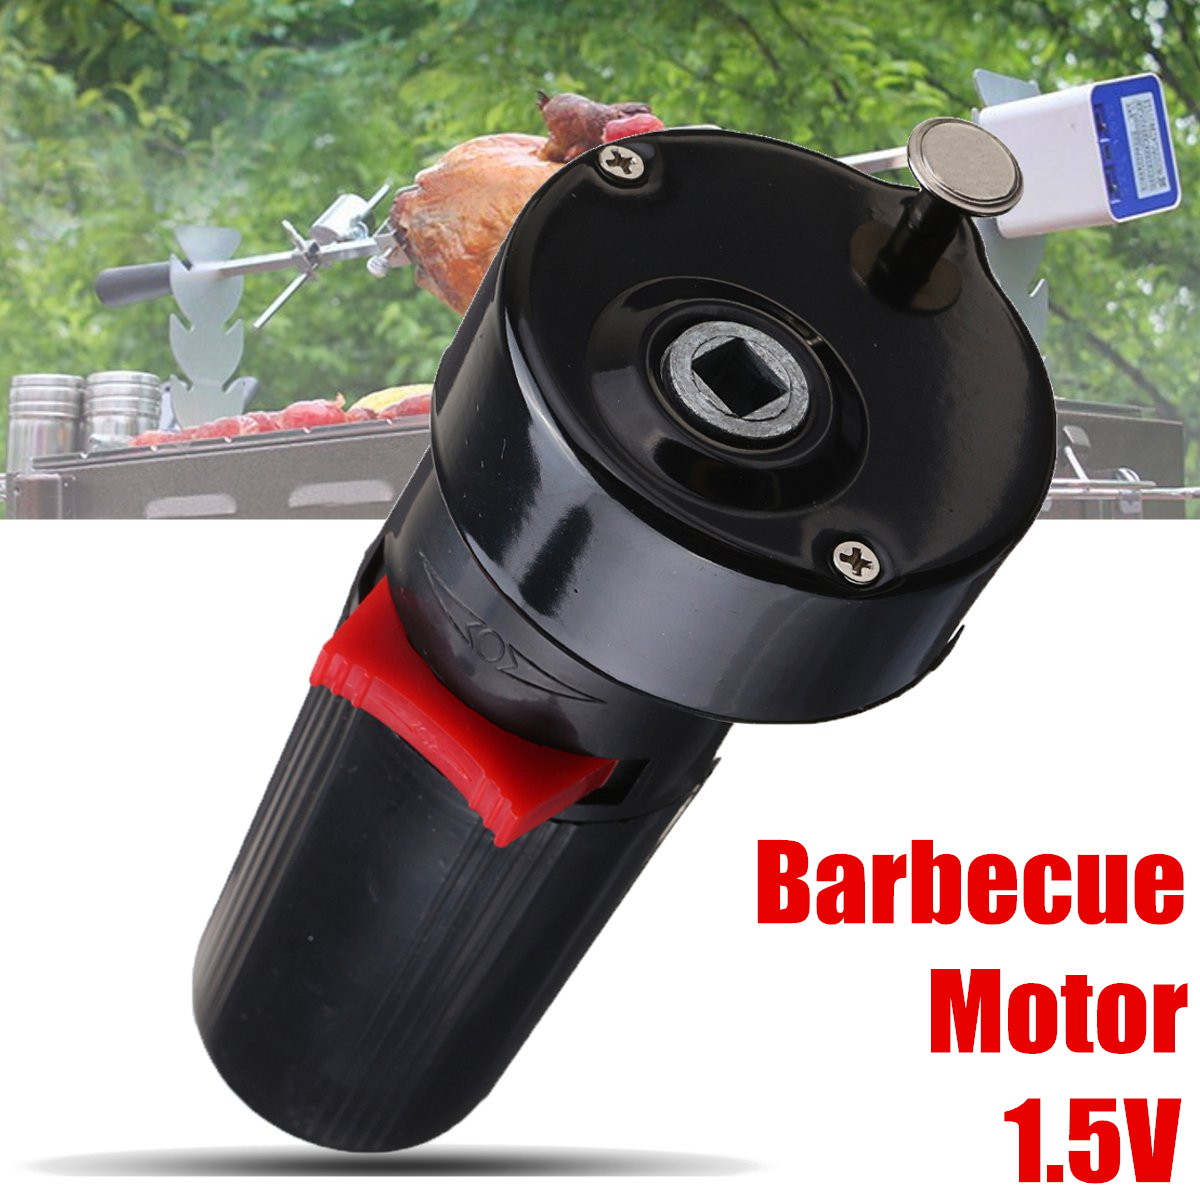 1.5V Battery black Barbecue Rotated Spit Motor BBQ Grill